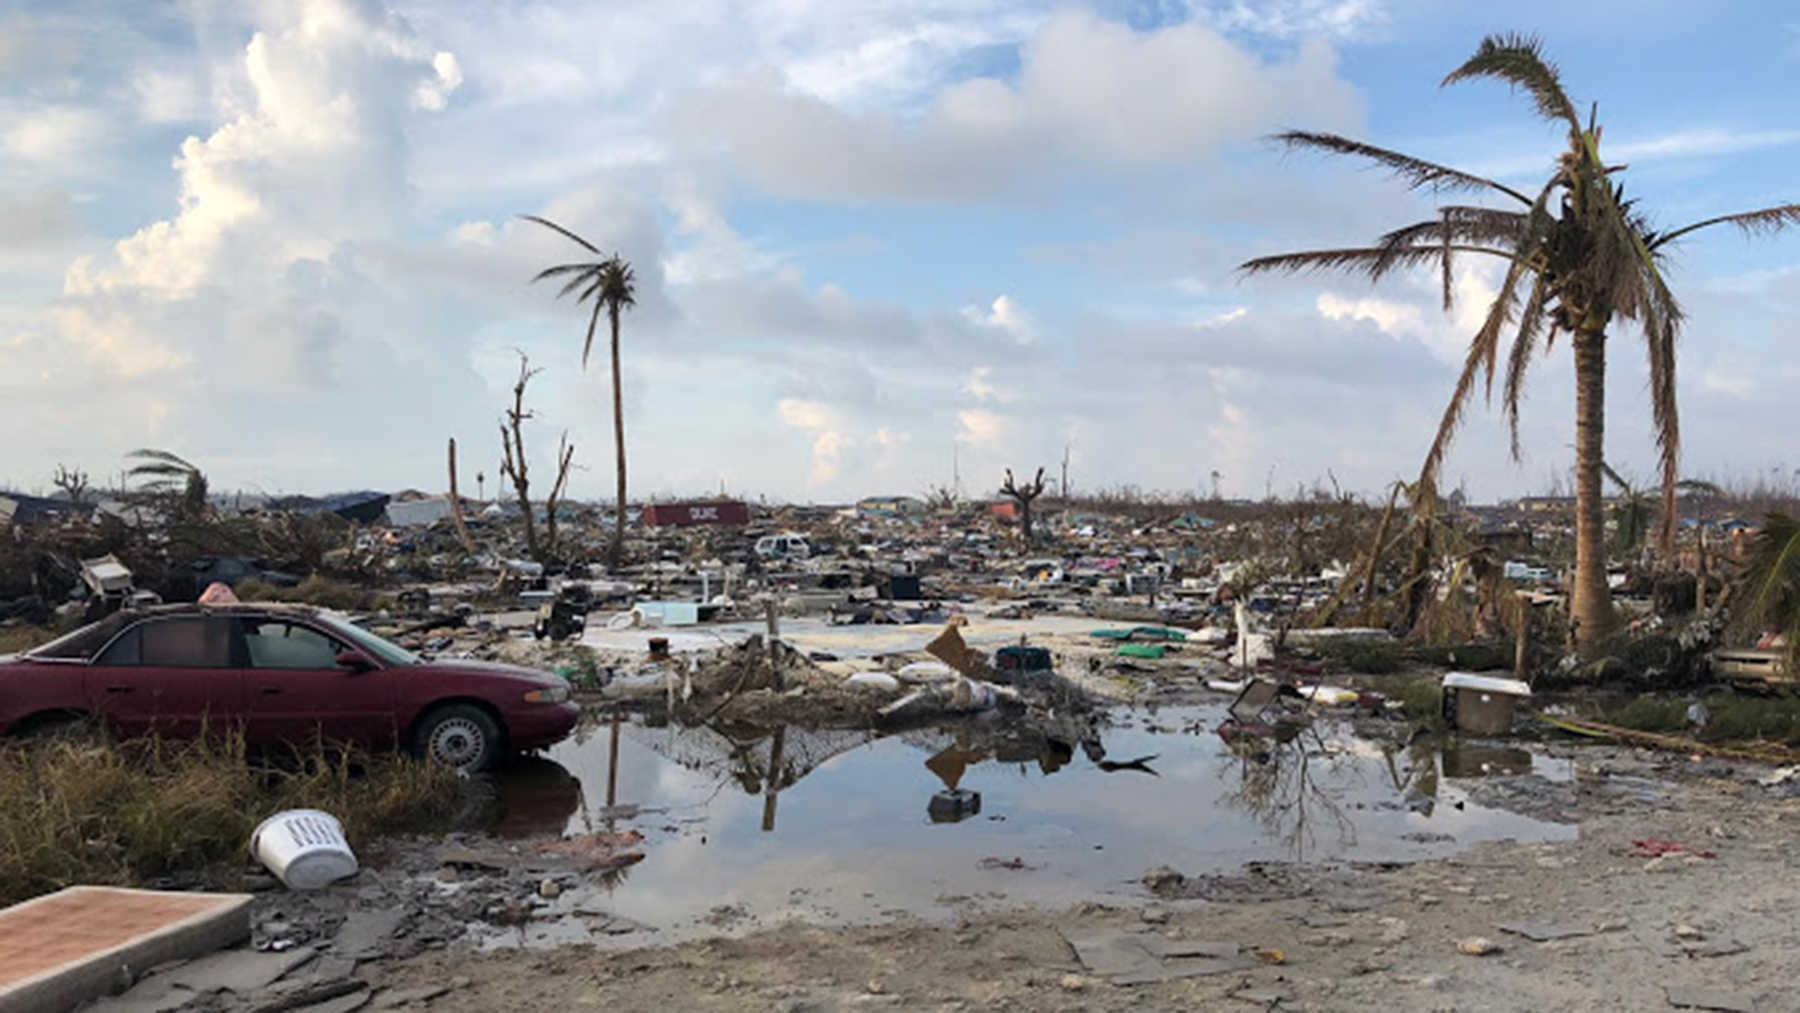 When Luis David Rodriguez arrived on Grand Abaco, he found even more devastation than he'd seen on Maria. (Luis David Rodriguez/Direct Relief)